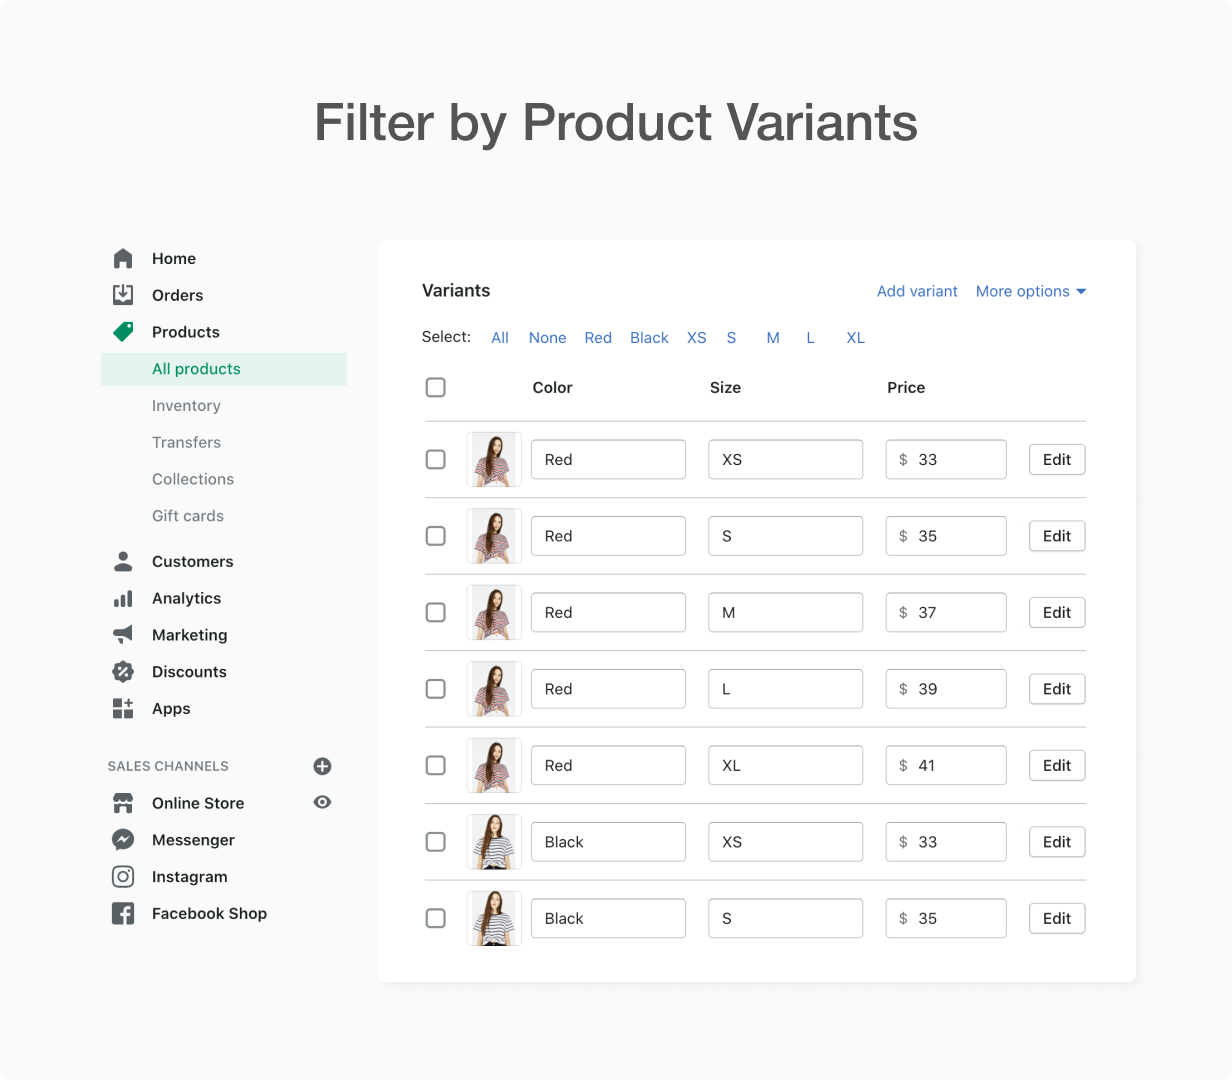 Filter by Product variants